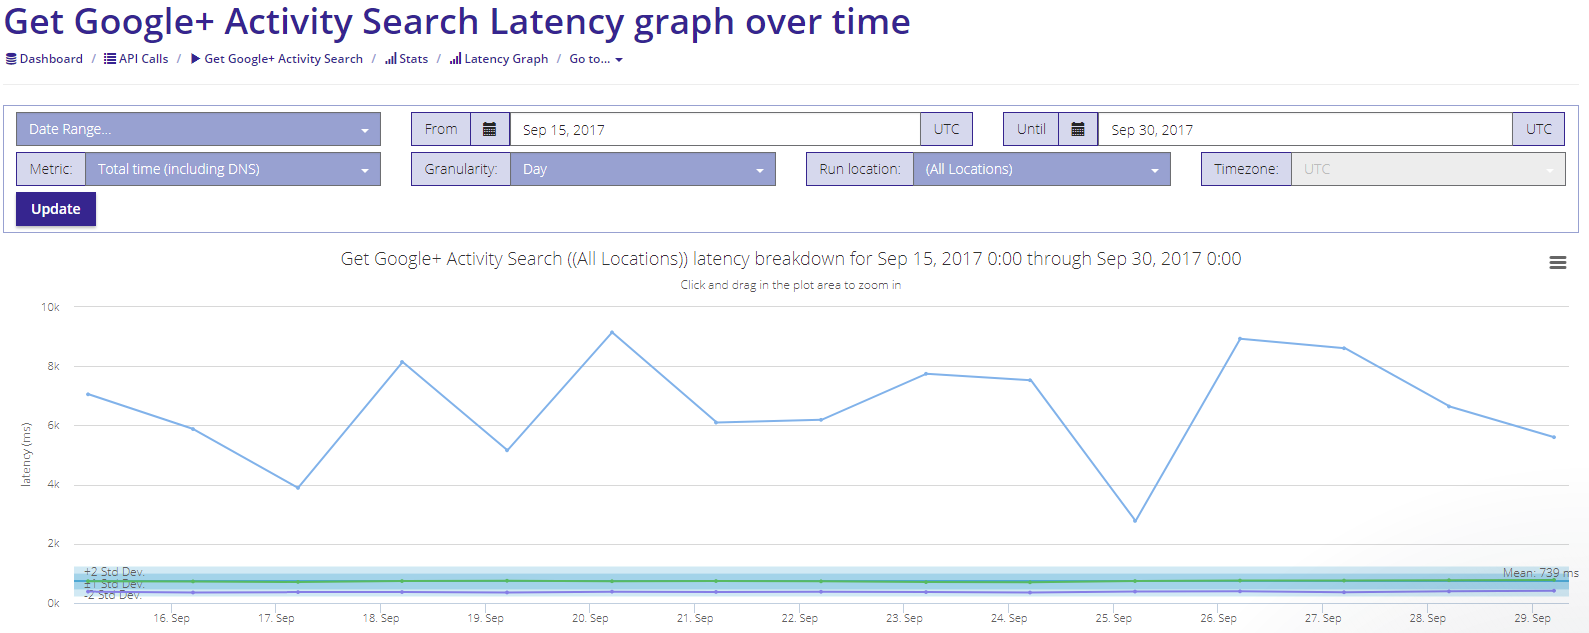 Figure 2. One important measure of API performance is latency, or the amount of time it takes for an endpoint to respond when called. In this image, you can see the Google+ Search latency graph detail as displayed in API Metrics.